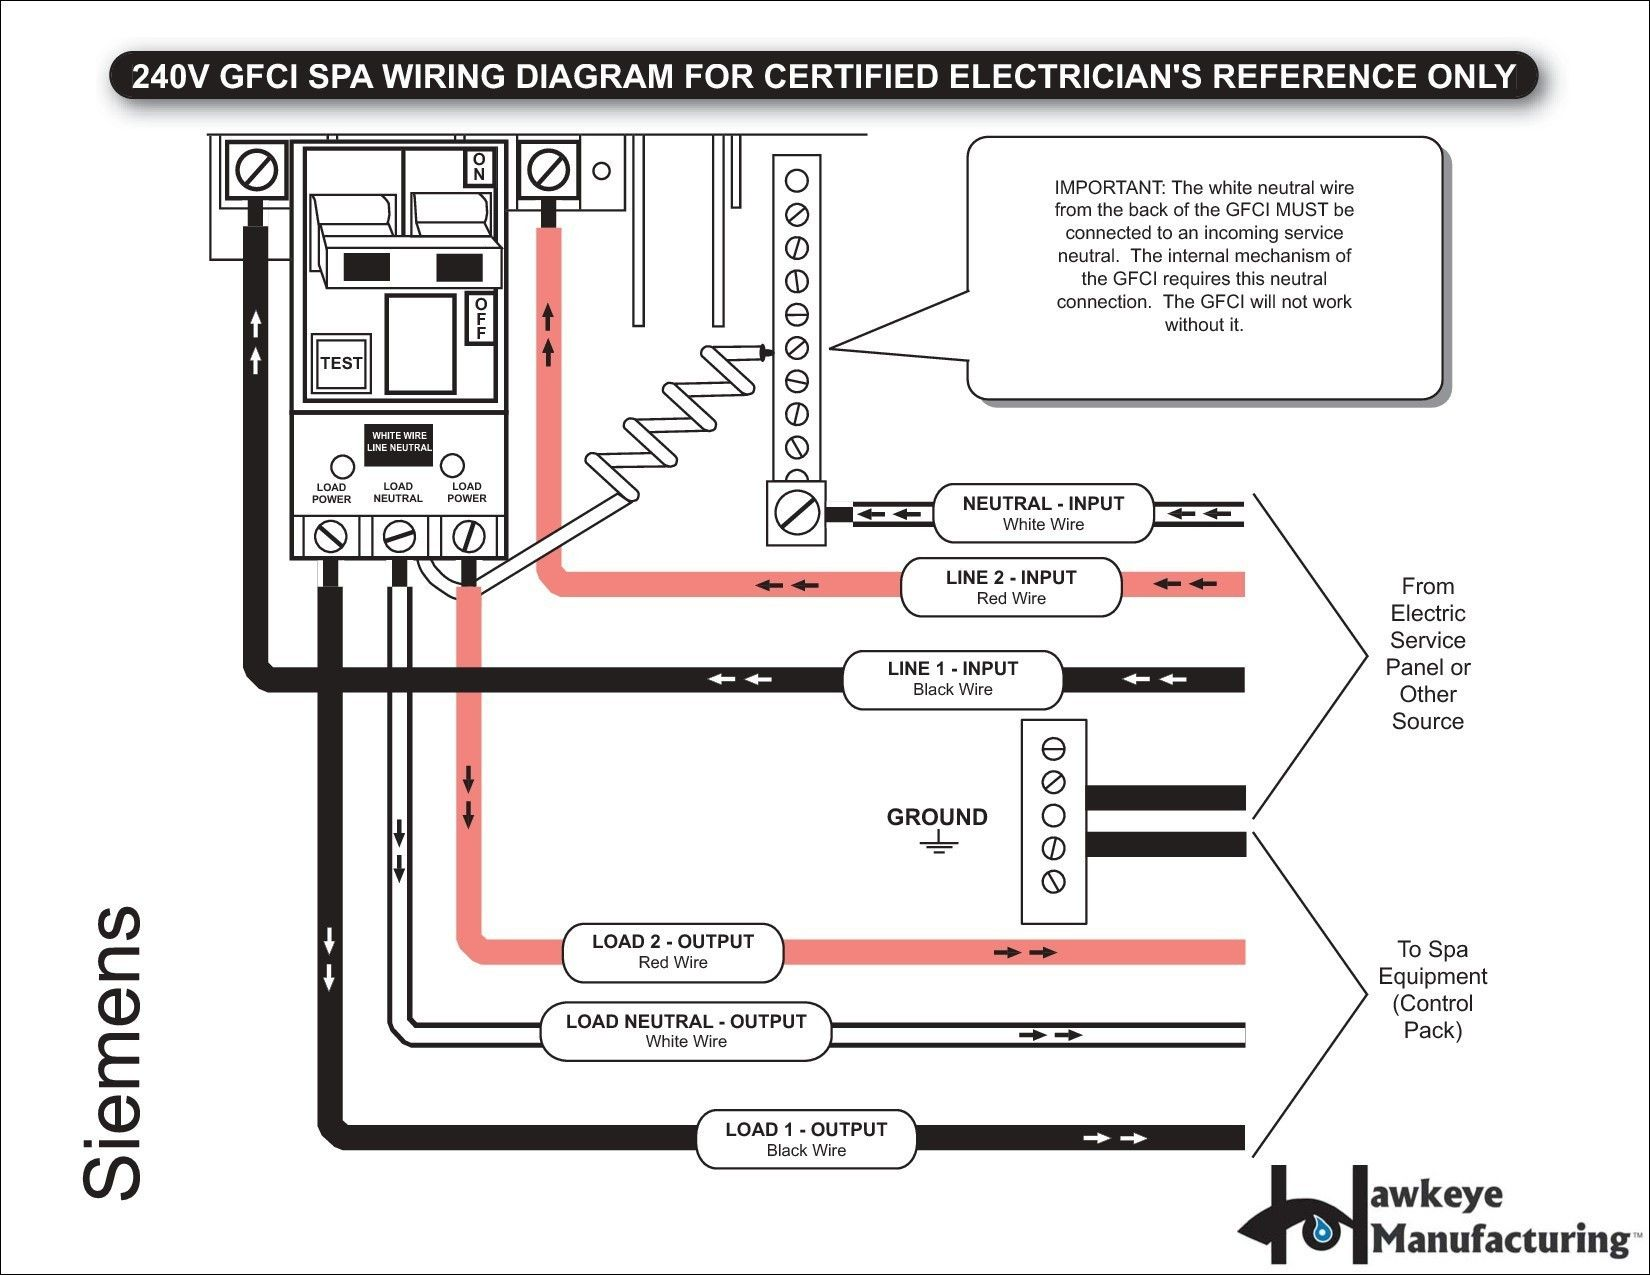 New Wiring Diagram Gfci Breaker #diagram #diagramsample #